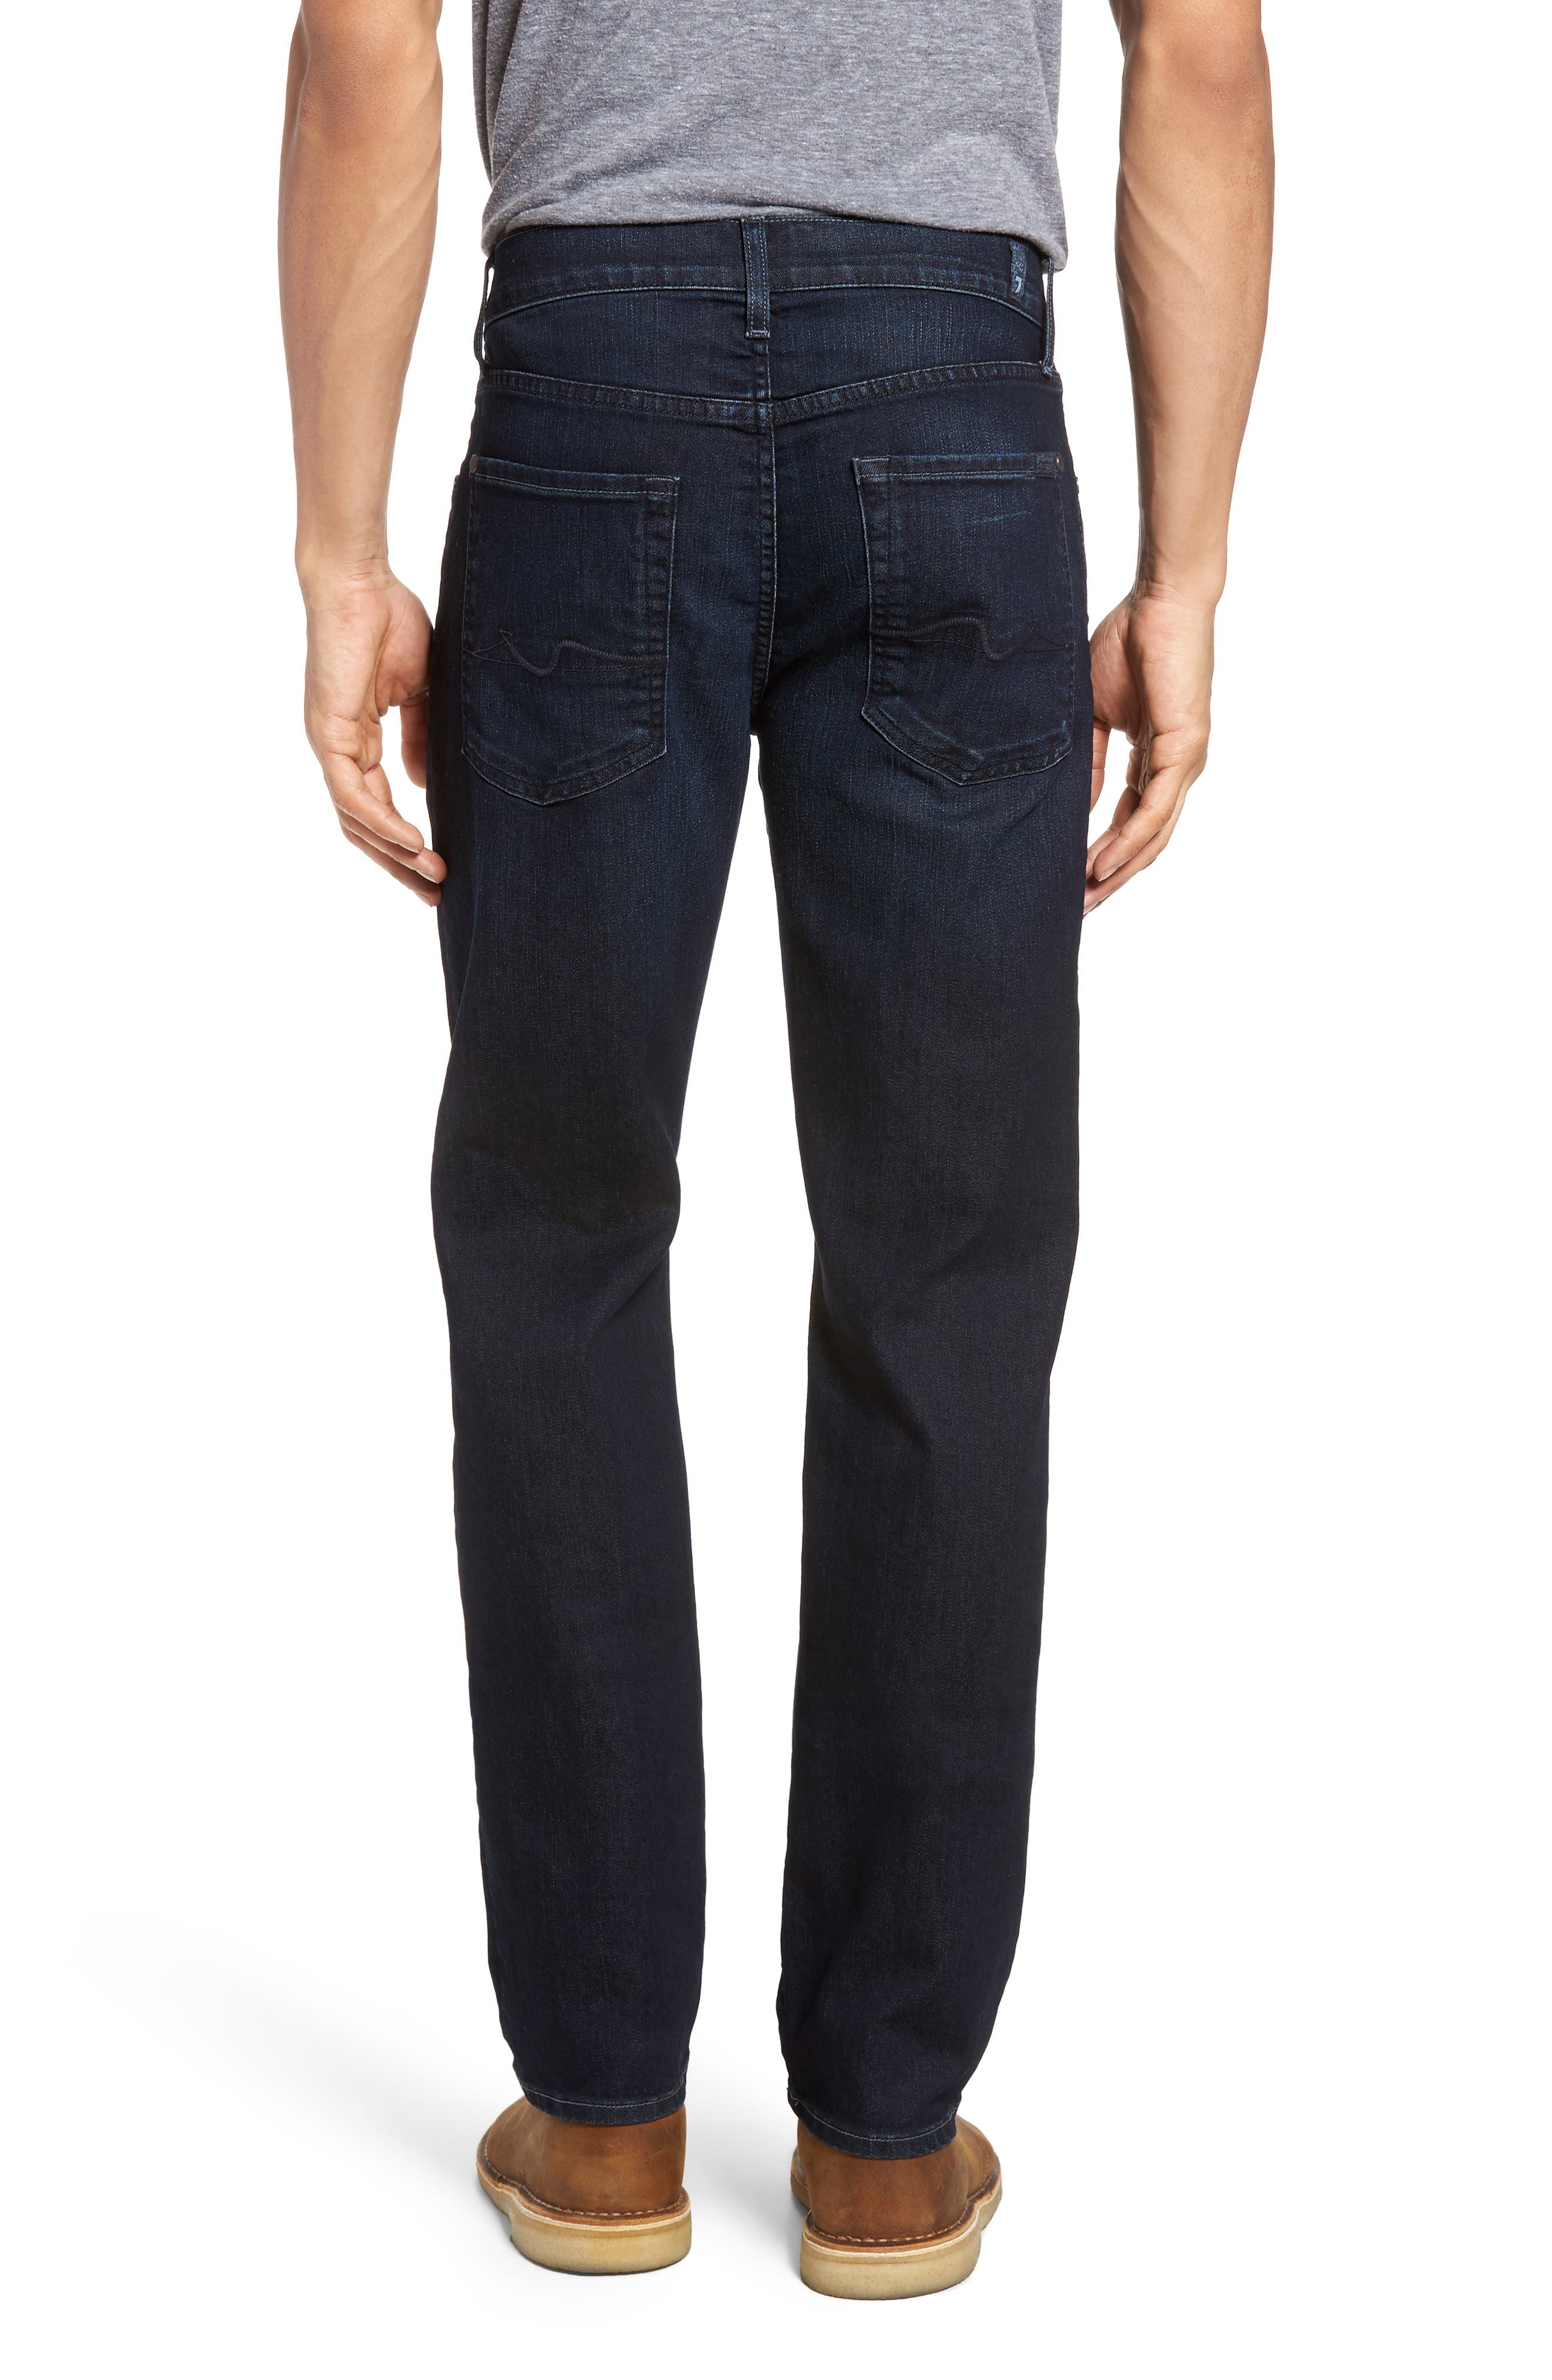 7 FOR ALL MANKIND<SUP>®</SUP>, Slimmy AirWeft Slim Fit Jeans, Alternate thumbnail 2, color, PERENNIAL